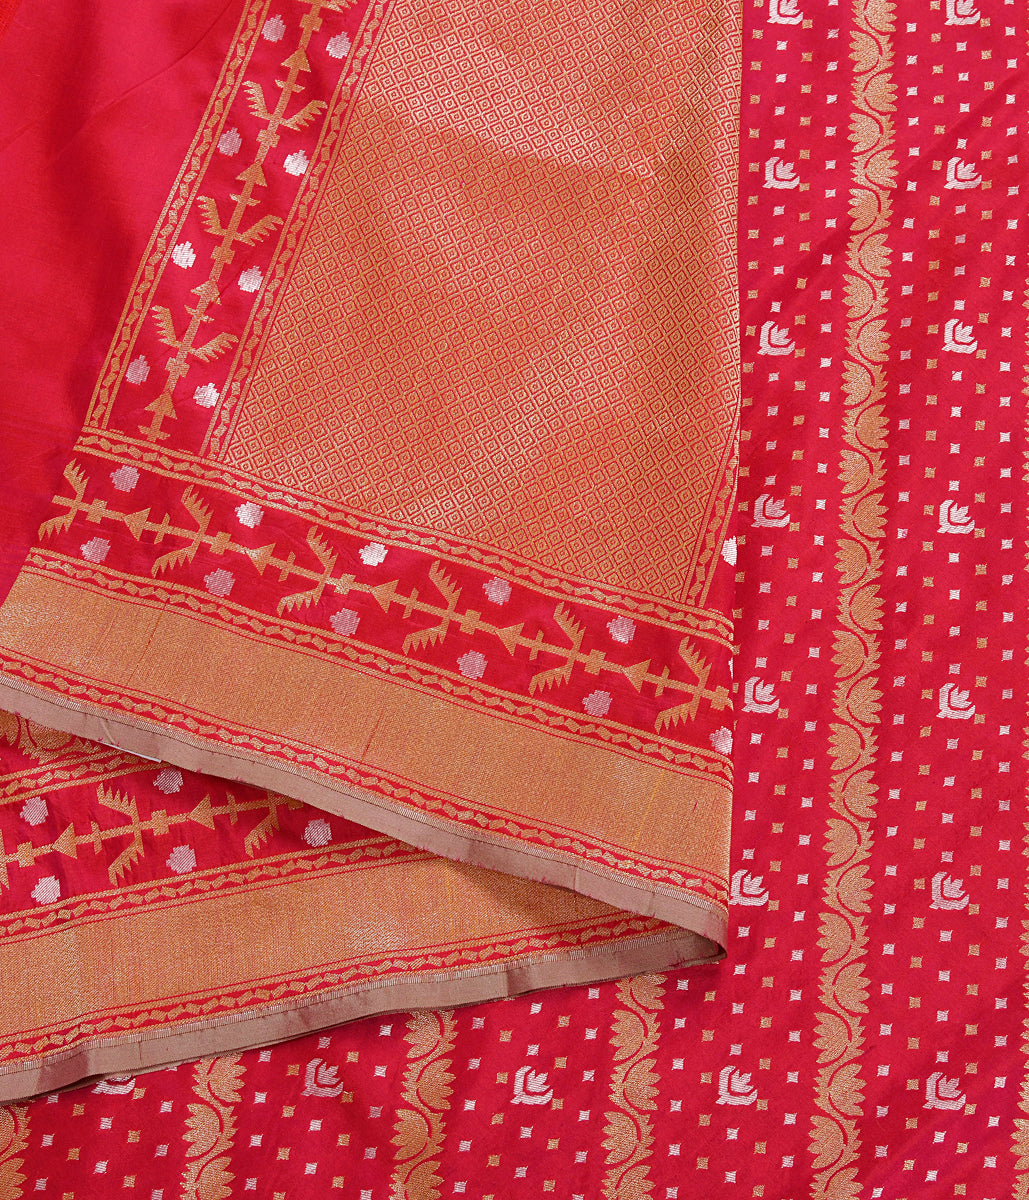 Handwoven Red and Rani Dual Tone Katan Silk Dupatta with Jamdani Weave